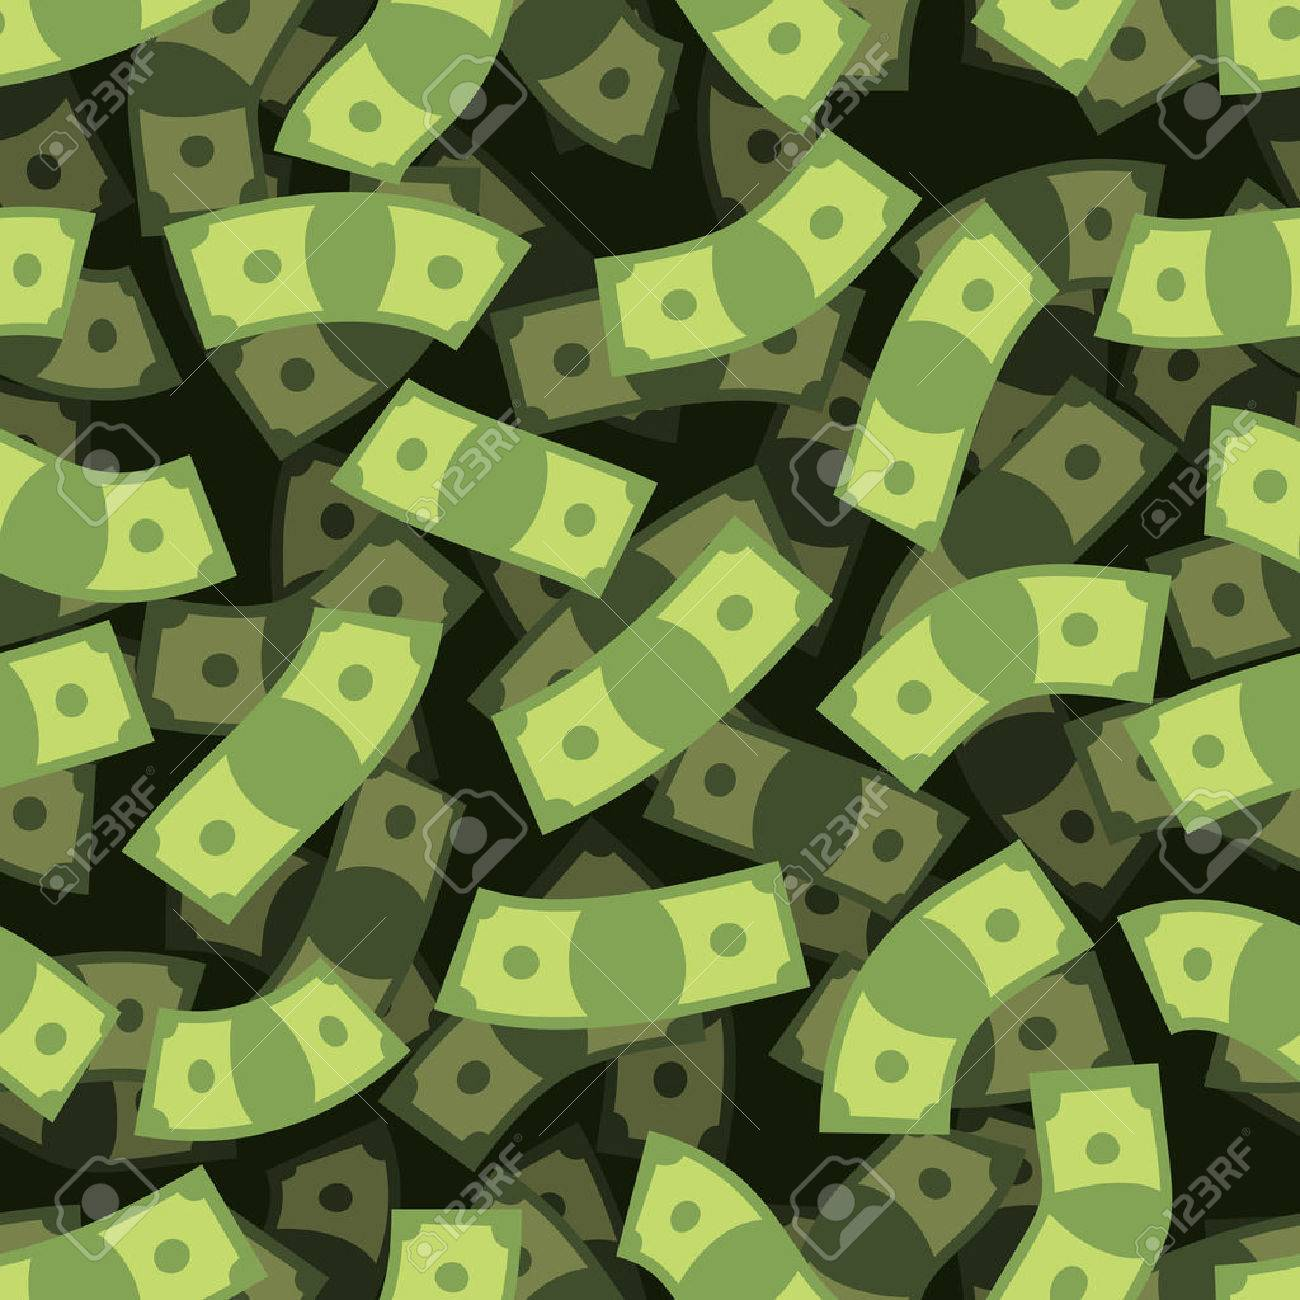 Money seamless pattern. Cash background. Money Rain. Flying dollars. 3D texture of cash. Financial Repeating Ornament. - 47647952